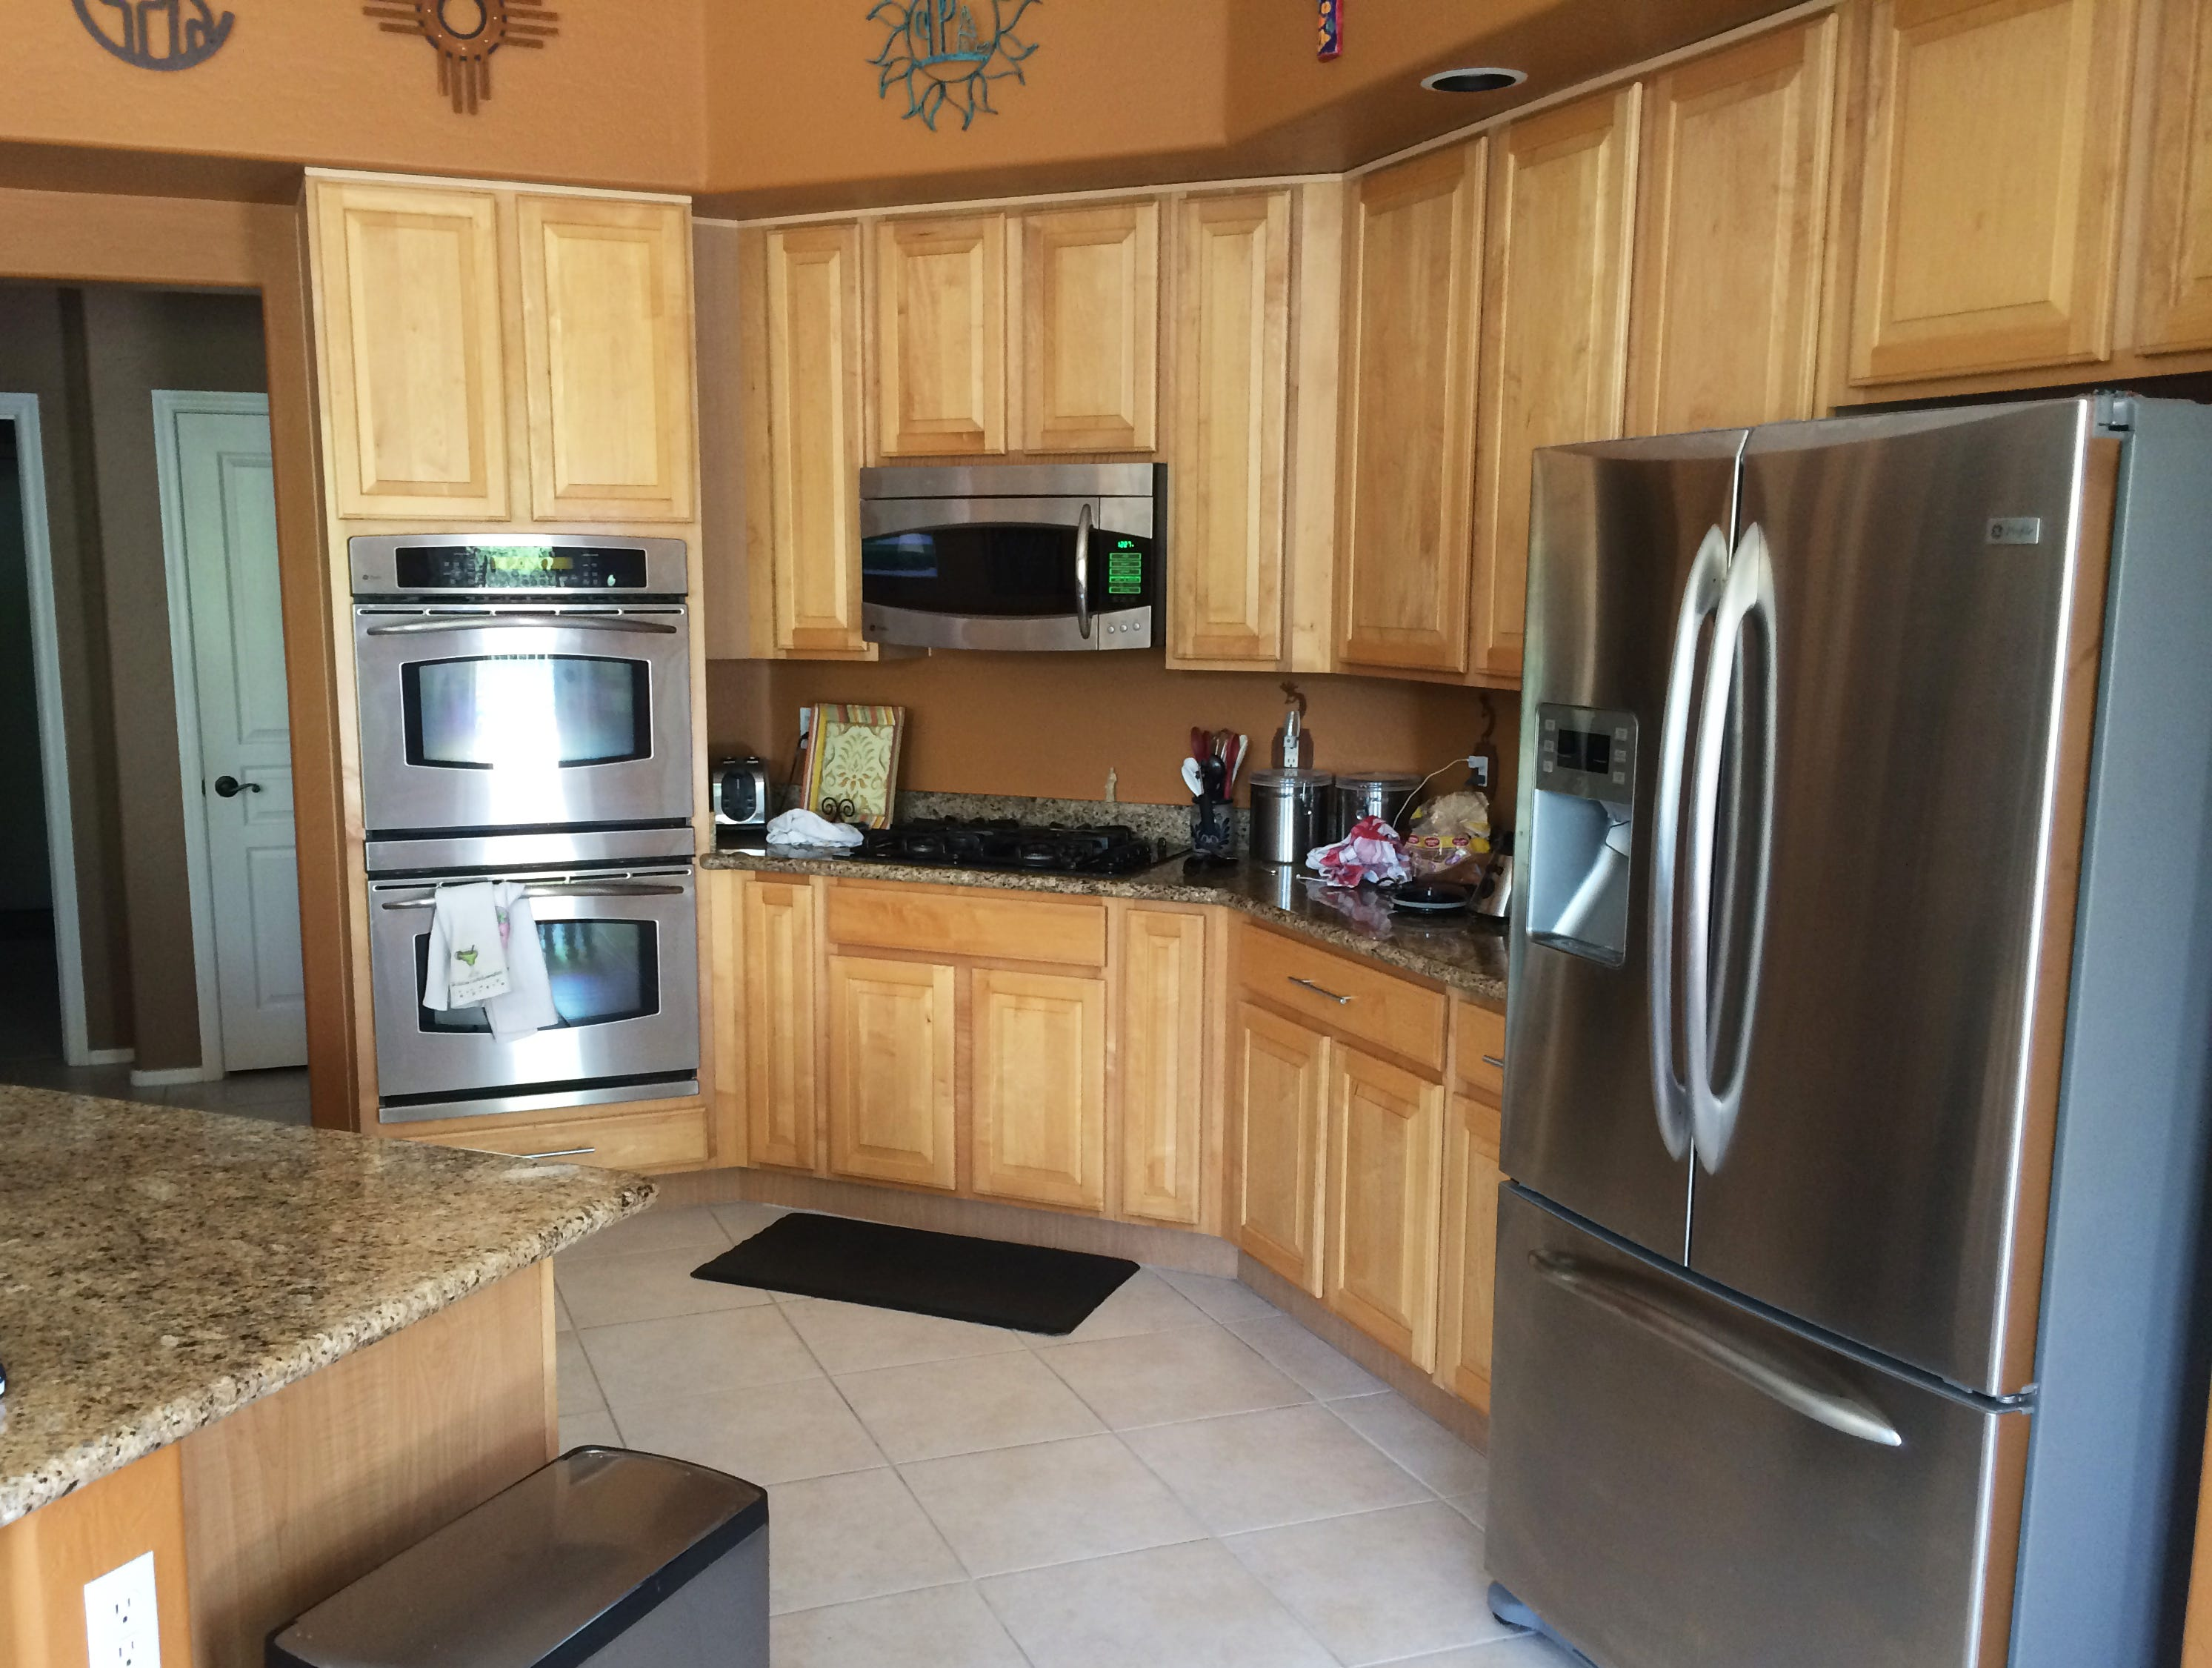 What the kitchen looked like when the couple purchased it in 2012. They hired interior designer Rebecca Arteaga to help them achieve a more contemporary look.